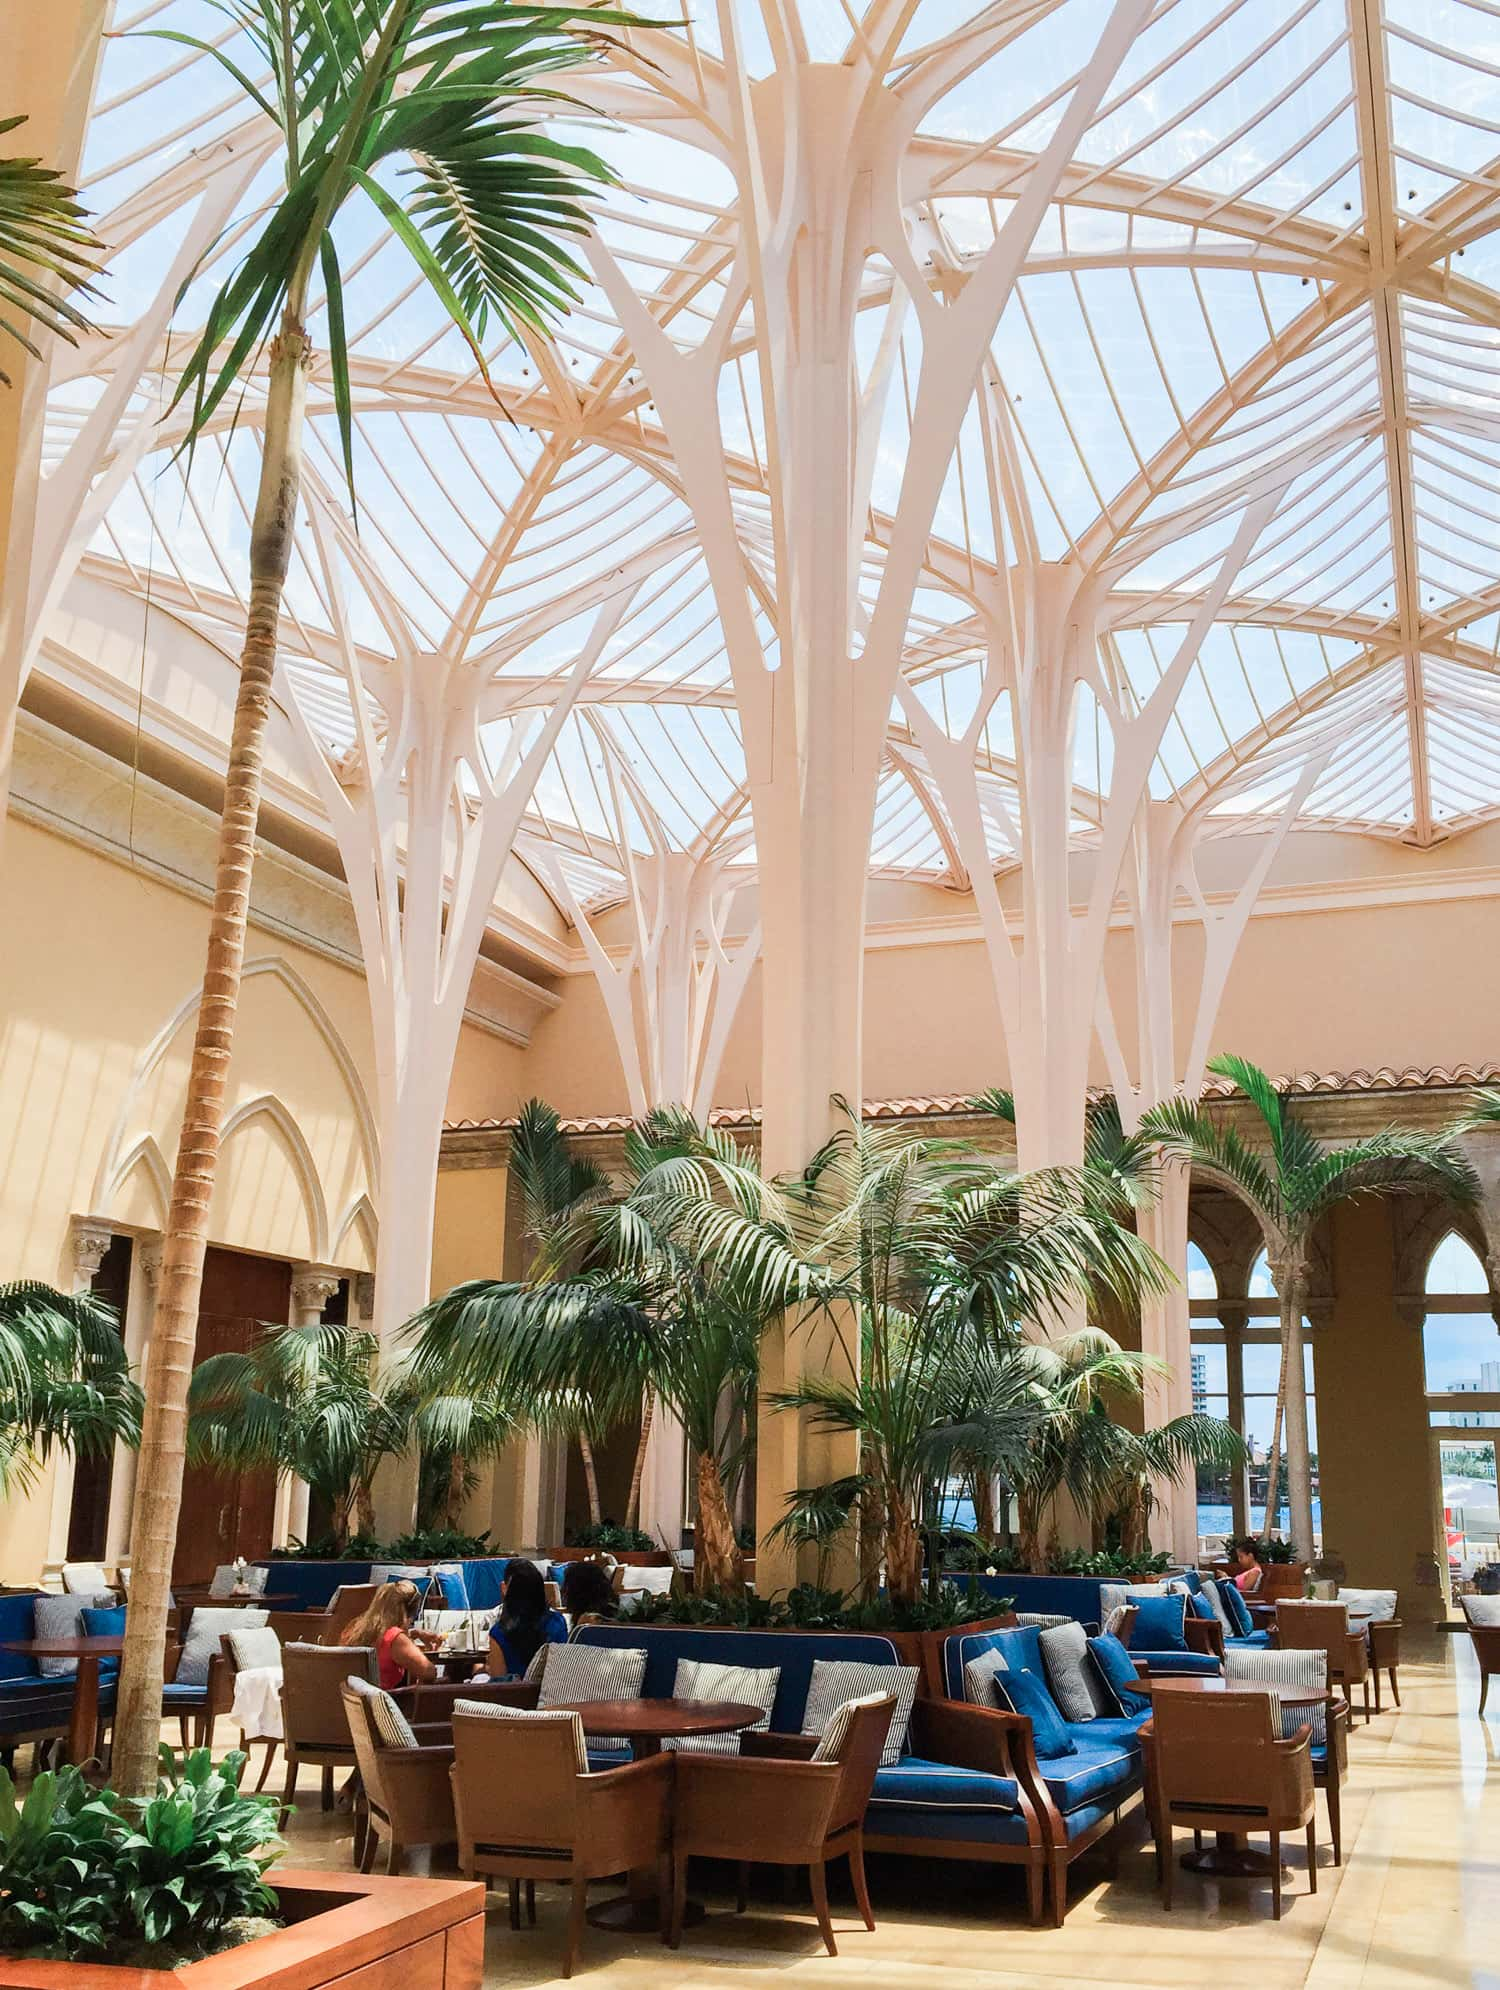 Palm Court restauarant review + A full review of the Boca Raton Resort & Club by blogger Ashley Brooke Nicholas